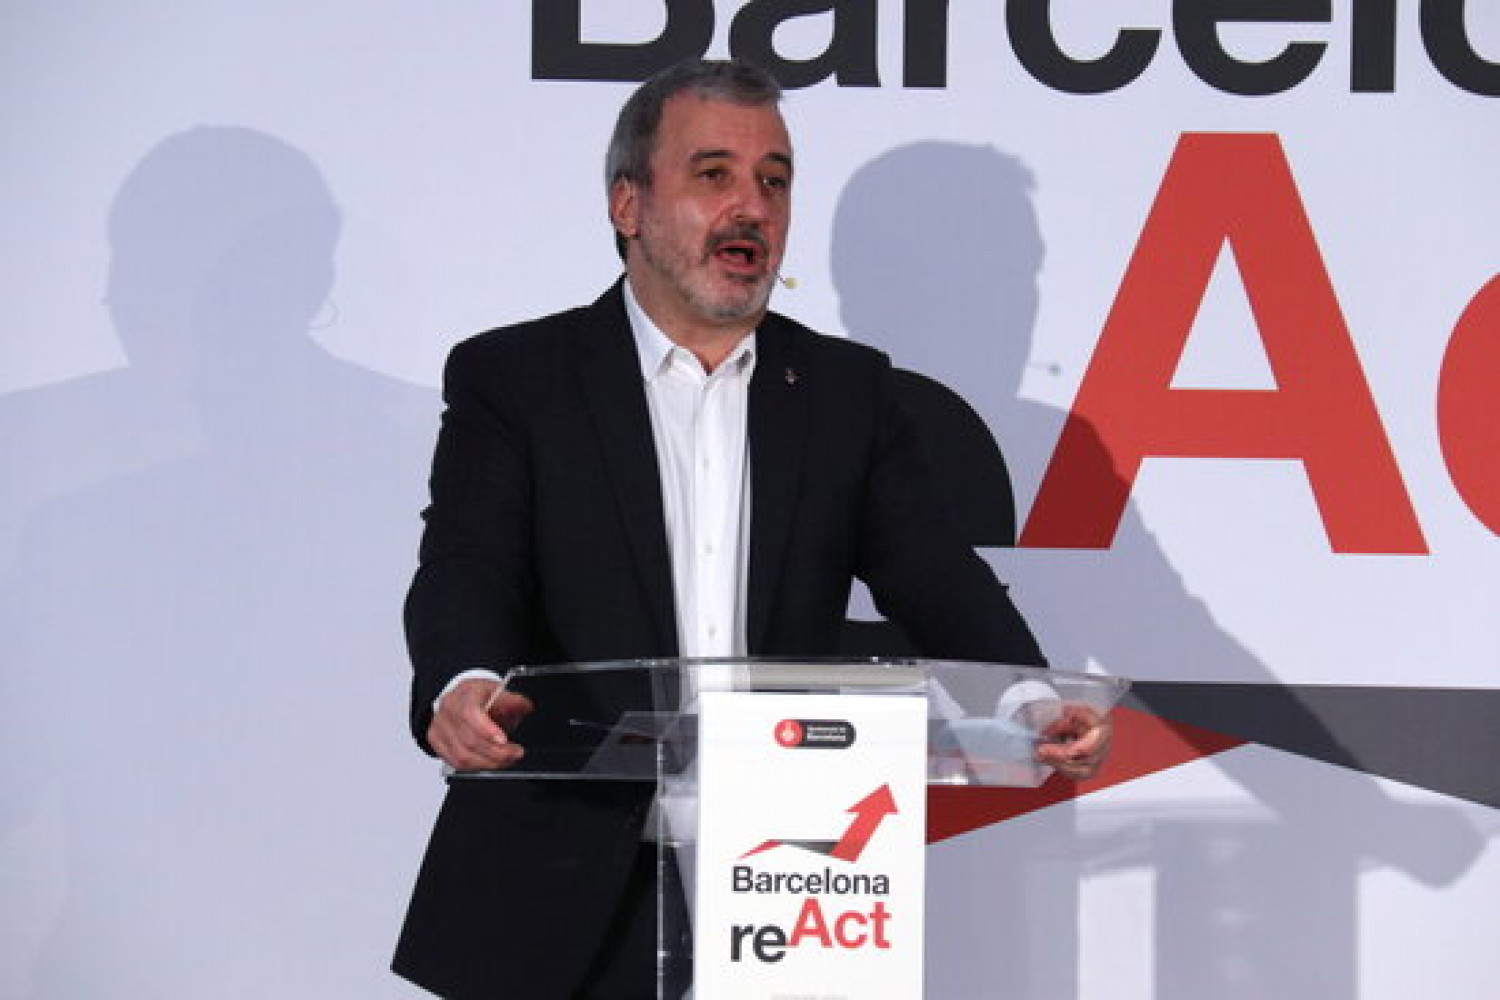 Barcelona deputy mayor Jaume Collboni speaks at a Barcelona reAct press conference in March, 2021 (by Aina Martí)